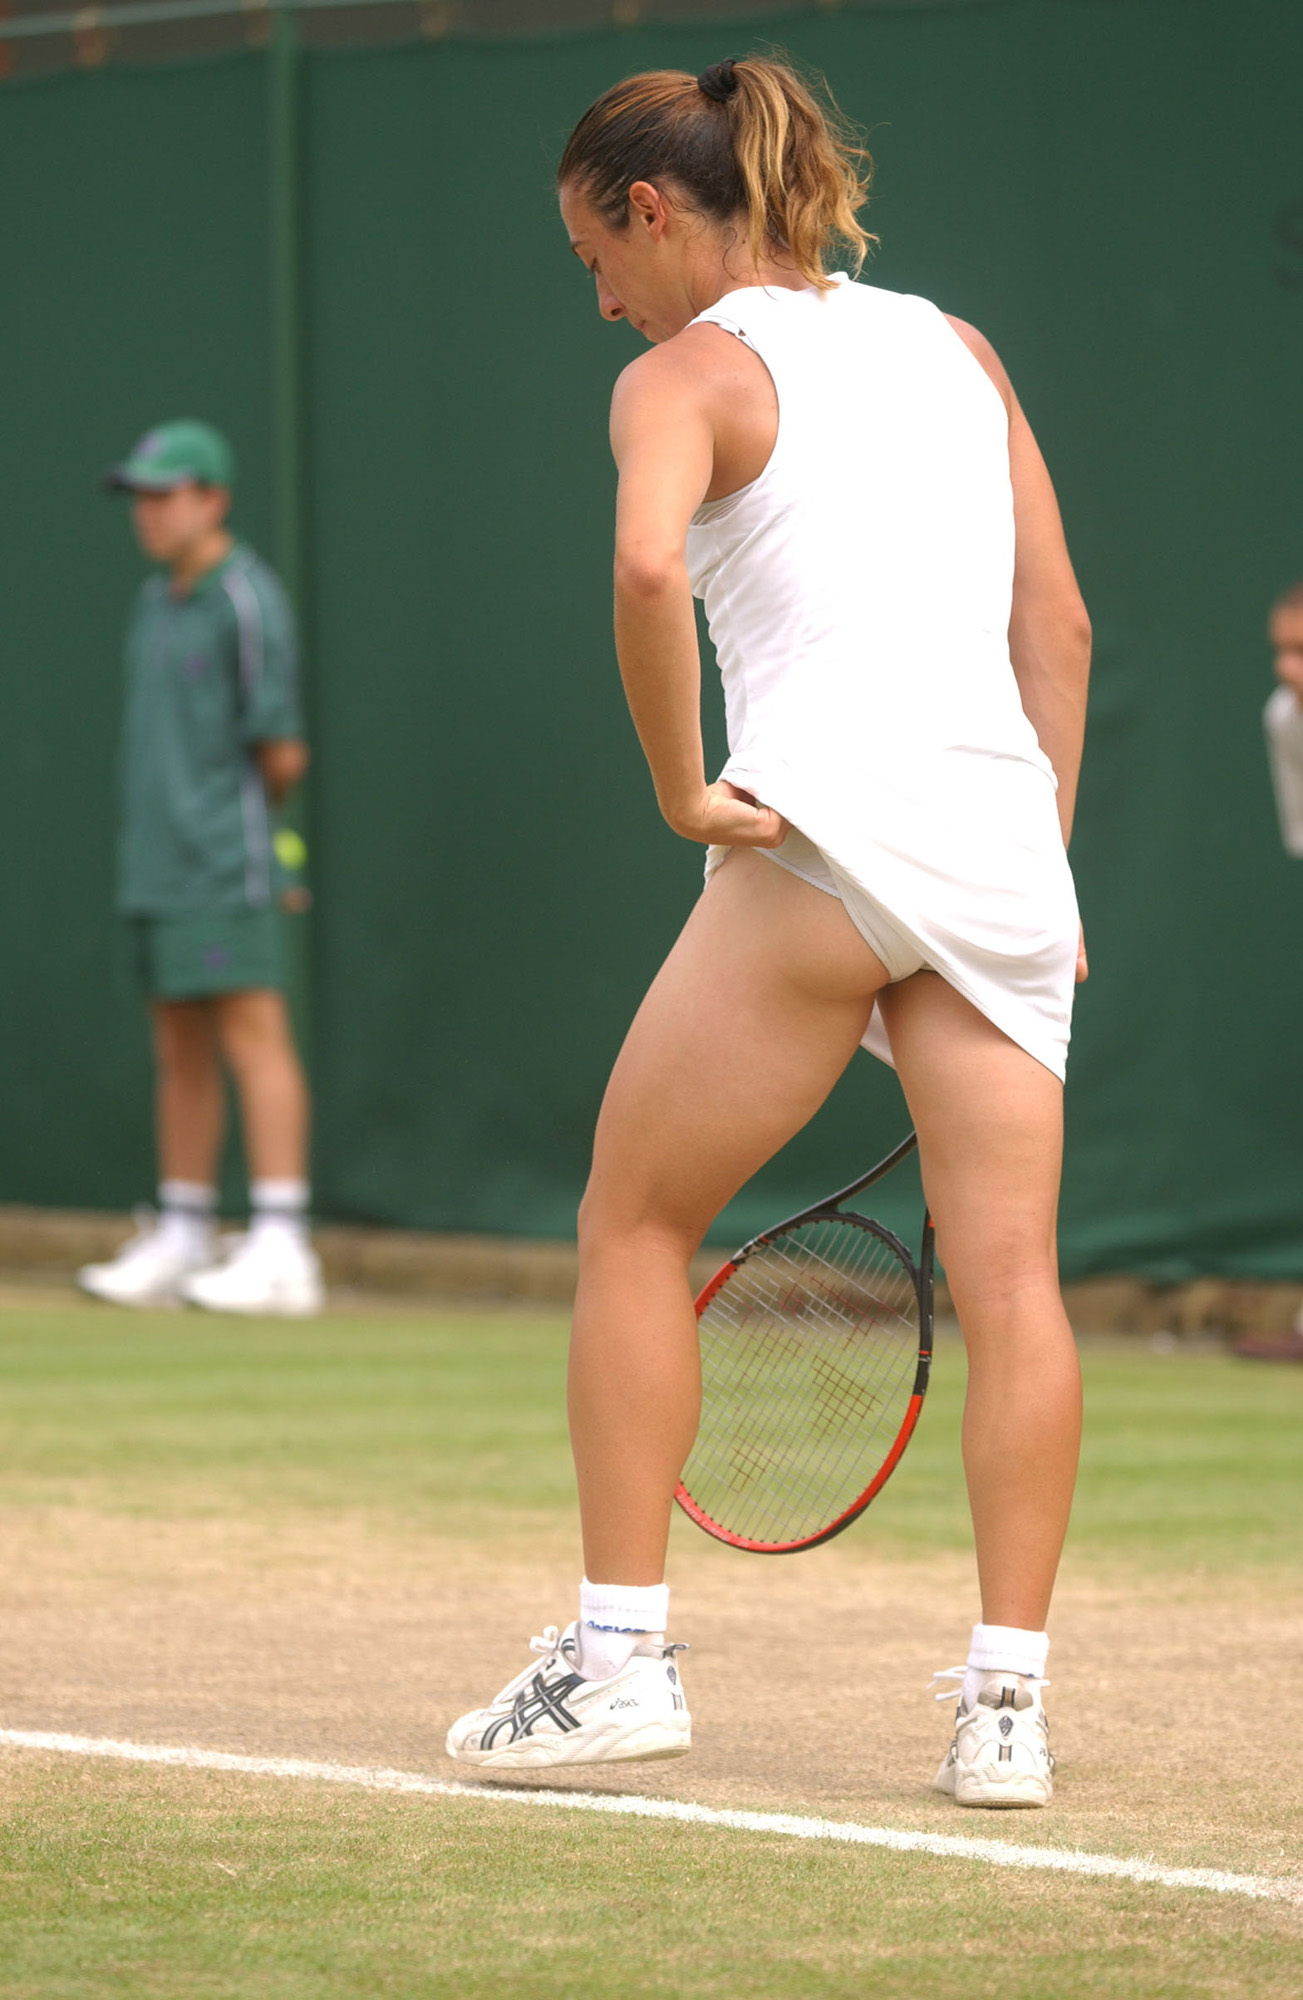 French champ Schiavone drops her 1st match on grass at Eastbourne